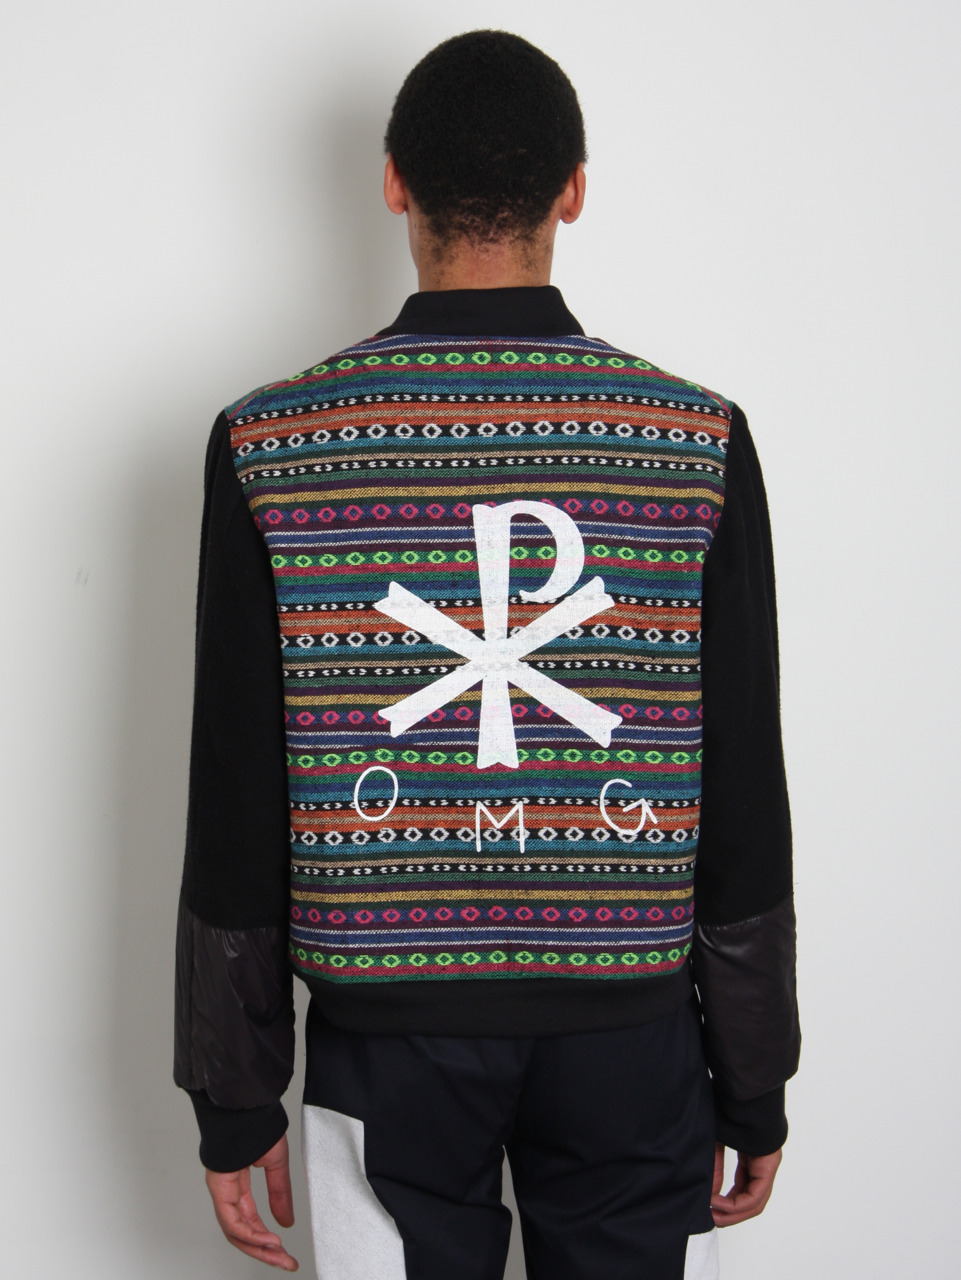 oki-ni:  Autumn/winter '11 Christopher Shannon is now live on oki-ni. For this collection, Christopher reflects on the fact that  sportswear is a global phenomenon. He noted when watching documentaries  that, even in the rainforest, you would see someone wearing a Nike  Jacket or adidas top. This idea he blended with an eclectic range of  visual inspiration, including books of Nigerian streetstyle by Pieter  Hugo, to create multicultural pieces with sportswear roots and varied  ethnic elements. As a result, the collection blends embroidery, tassels and pom poms to present a truly multicultural vision. Also, as an aside, the prints used throughout the collection were done by the talented Rob Whoriskey, who we also commissioned to do illustrations for our Fallow Jeans feature a while back. Nice work Rob.  OMG!!!!